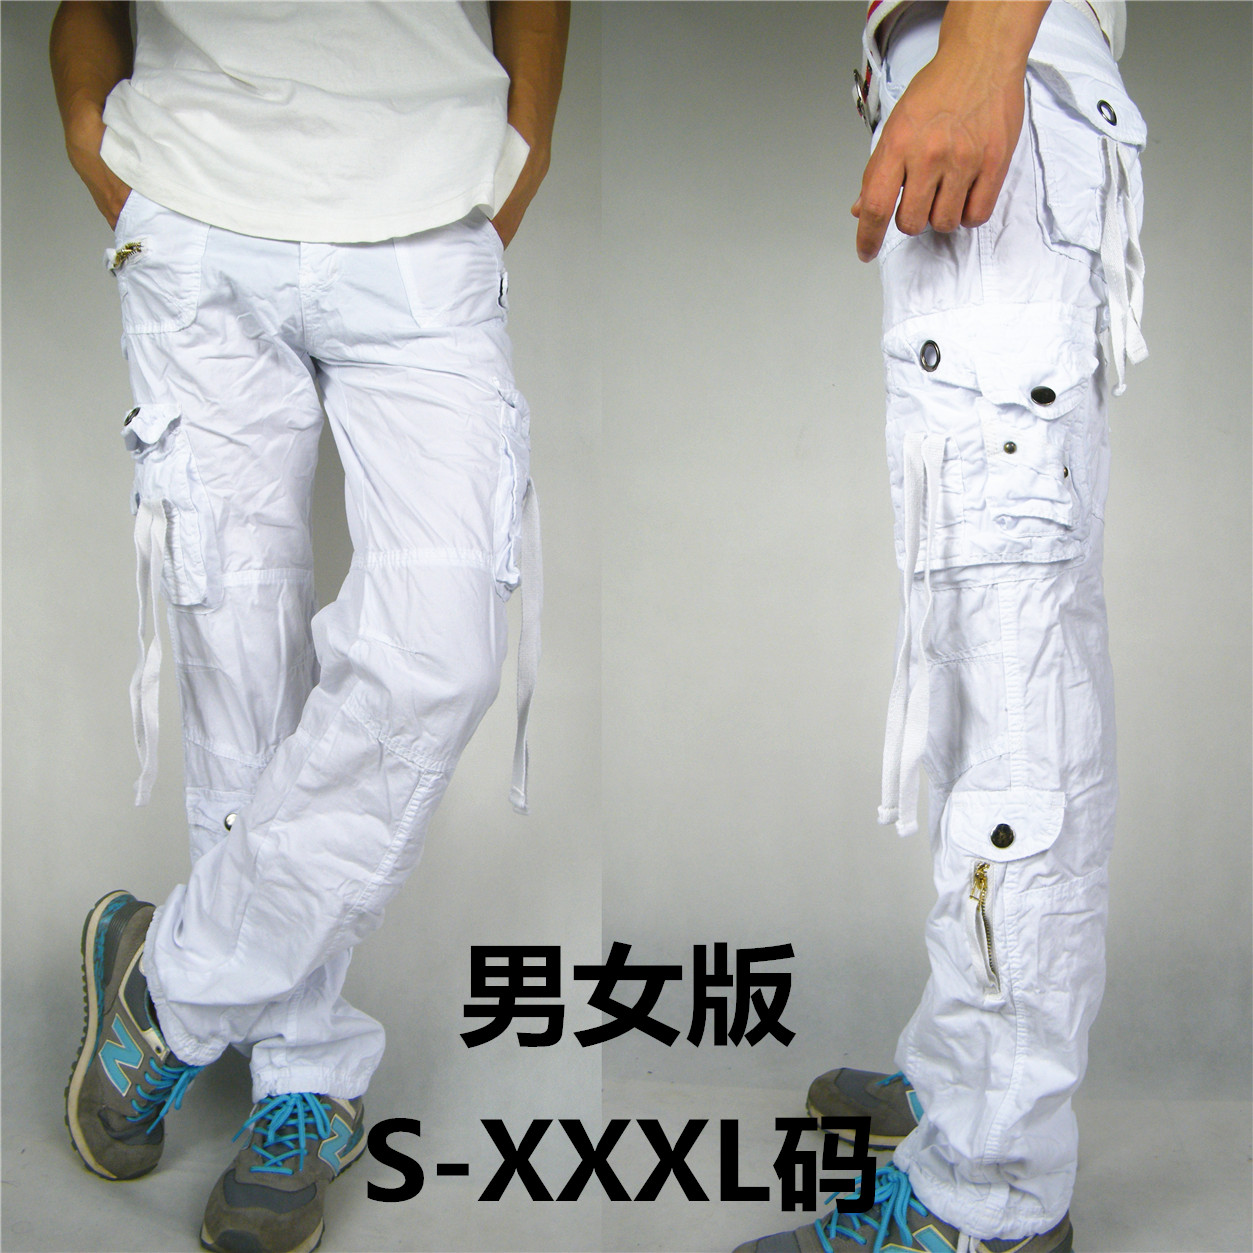 Mens White Casual Trousers Casual Trousers For Men